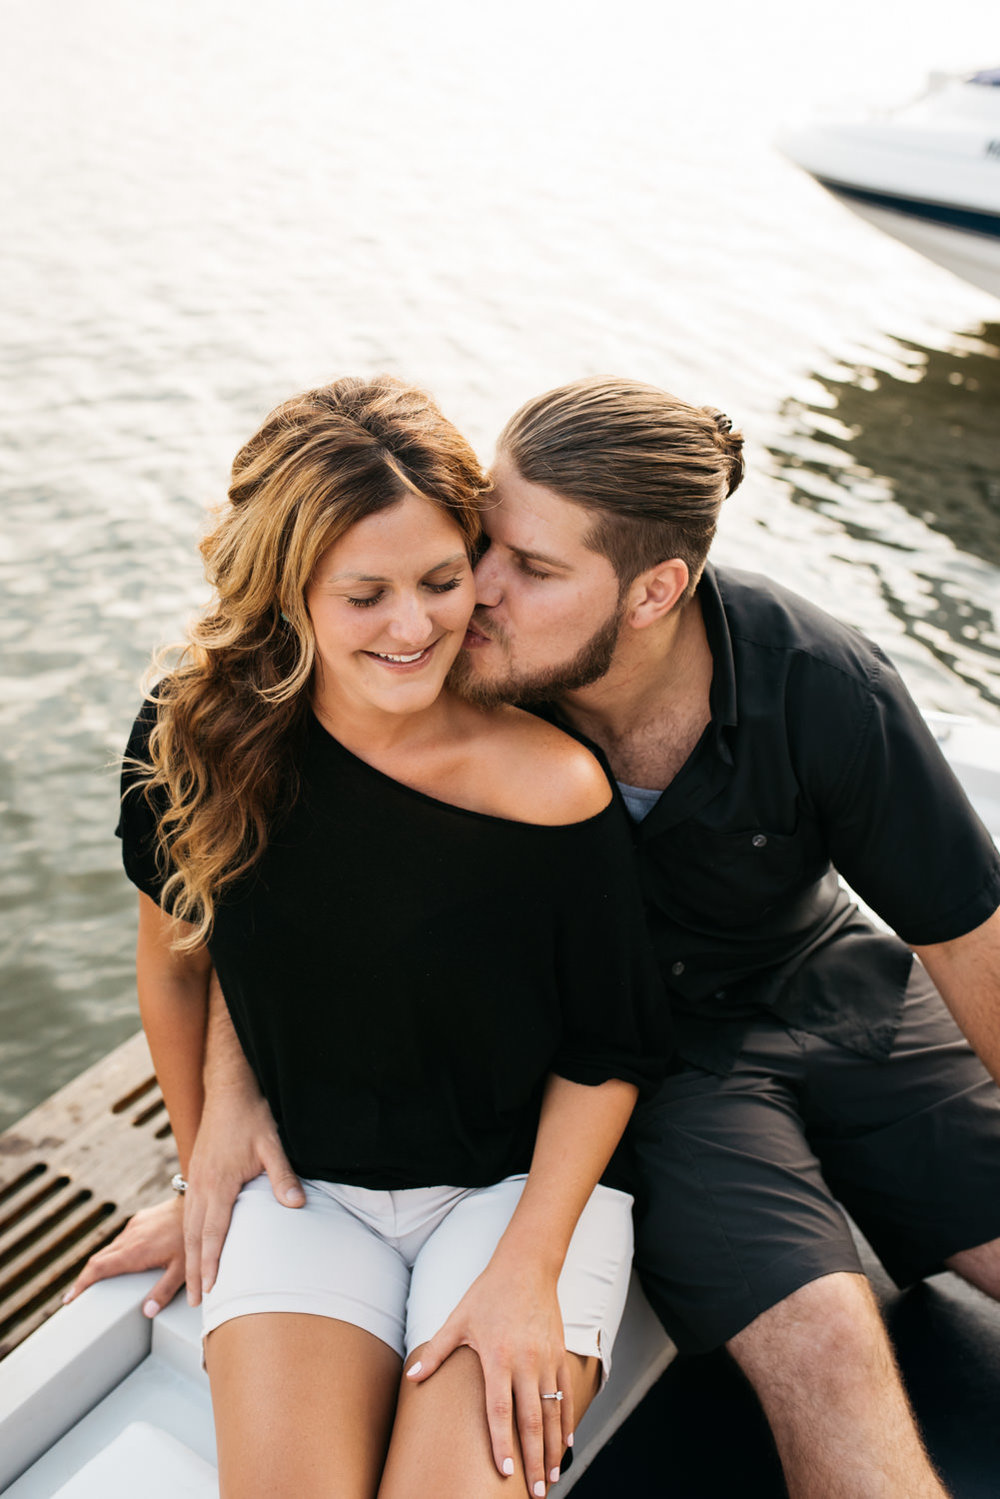 pittsburgh_boat_engagement_session_-33.jpg